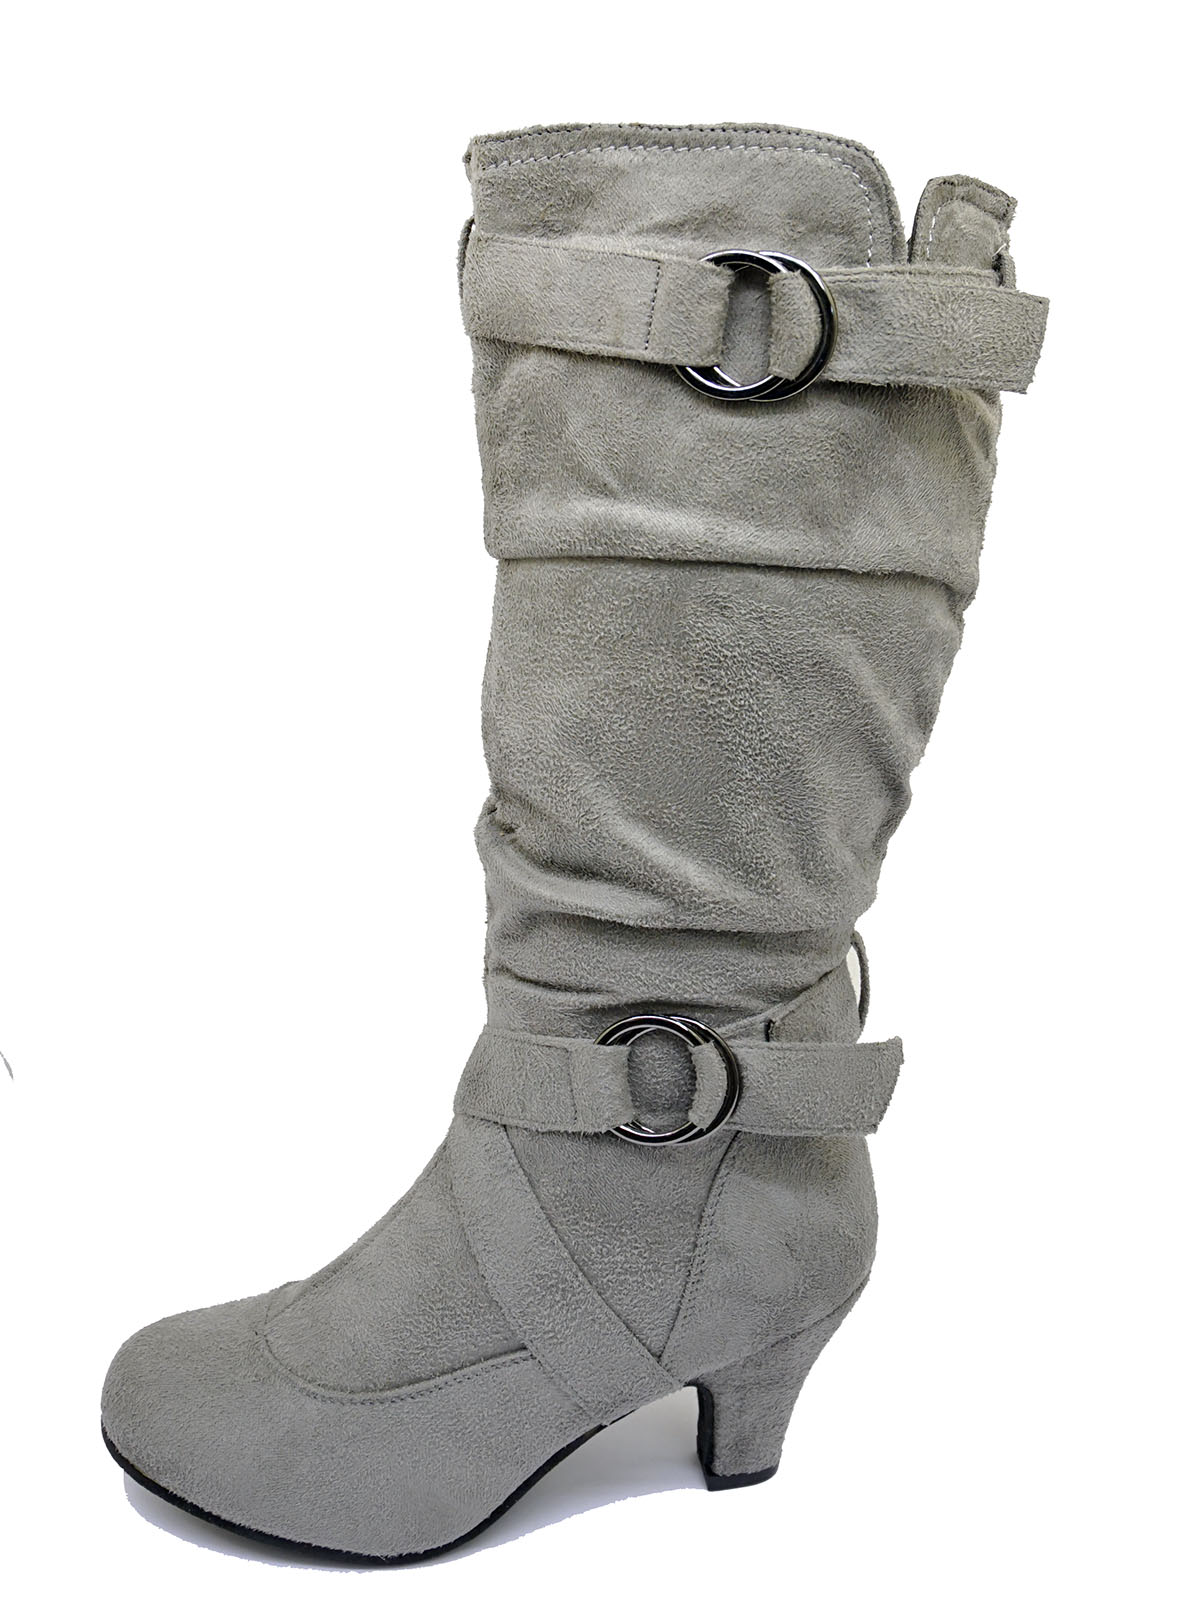 LADIES-GREY-ZIP-UP-BIKER-SLOUCH-RUCHED-TALL-KNEE-CALF-LOW-HEEL-BOOTS-SHOES-4-10 thumbnail 6